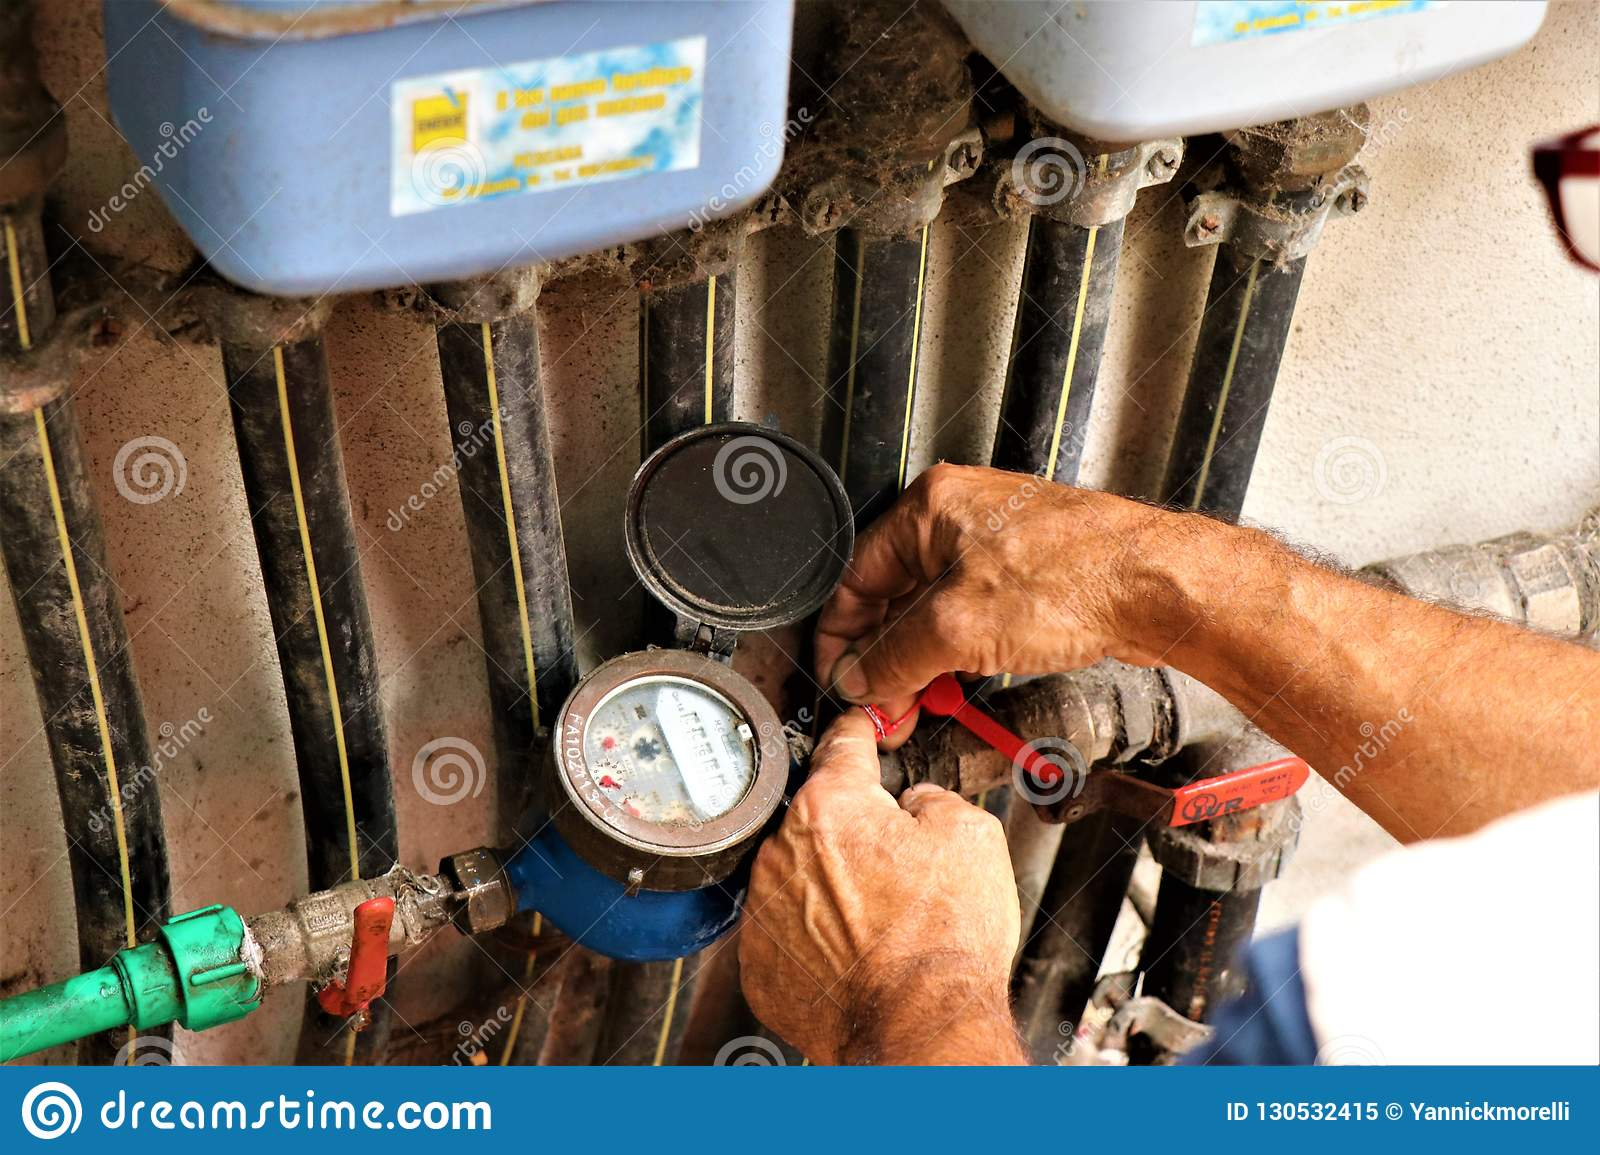 Details of a plumber intent on repairing a hydraulic valve.